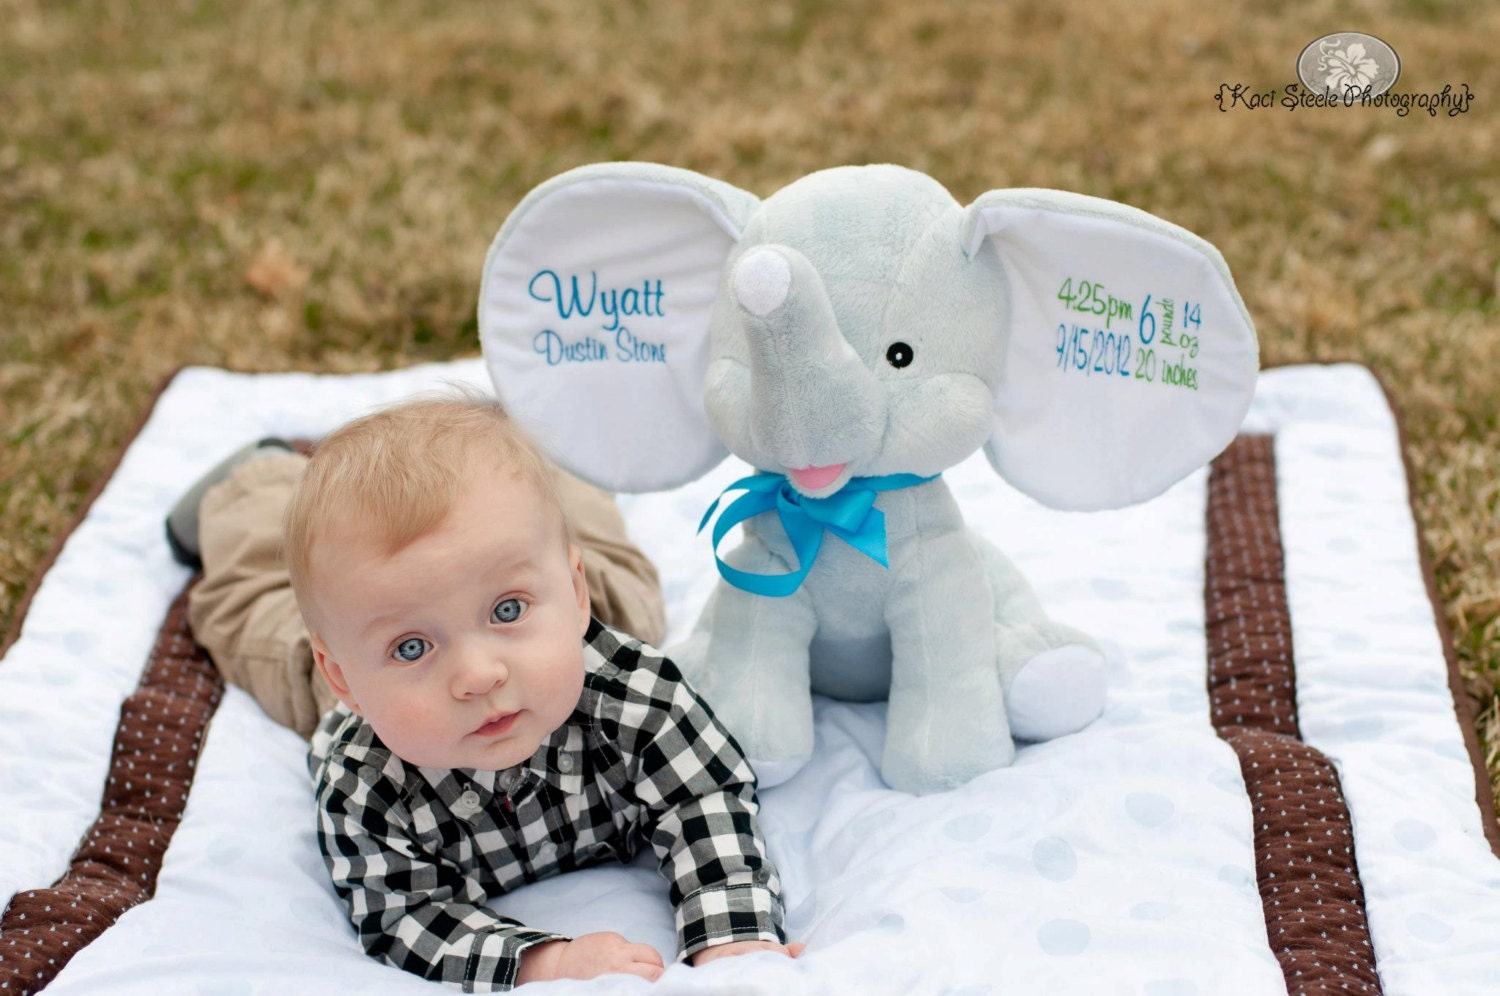 Personalized gifts for kids babies etsy personalized baby gift baby cubbies dumble elephant birth announcement stuffed animal keepsake negle Gallery